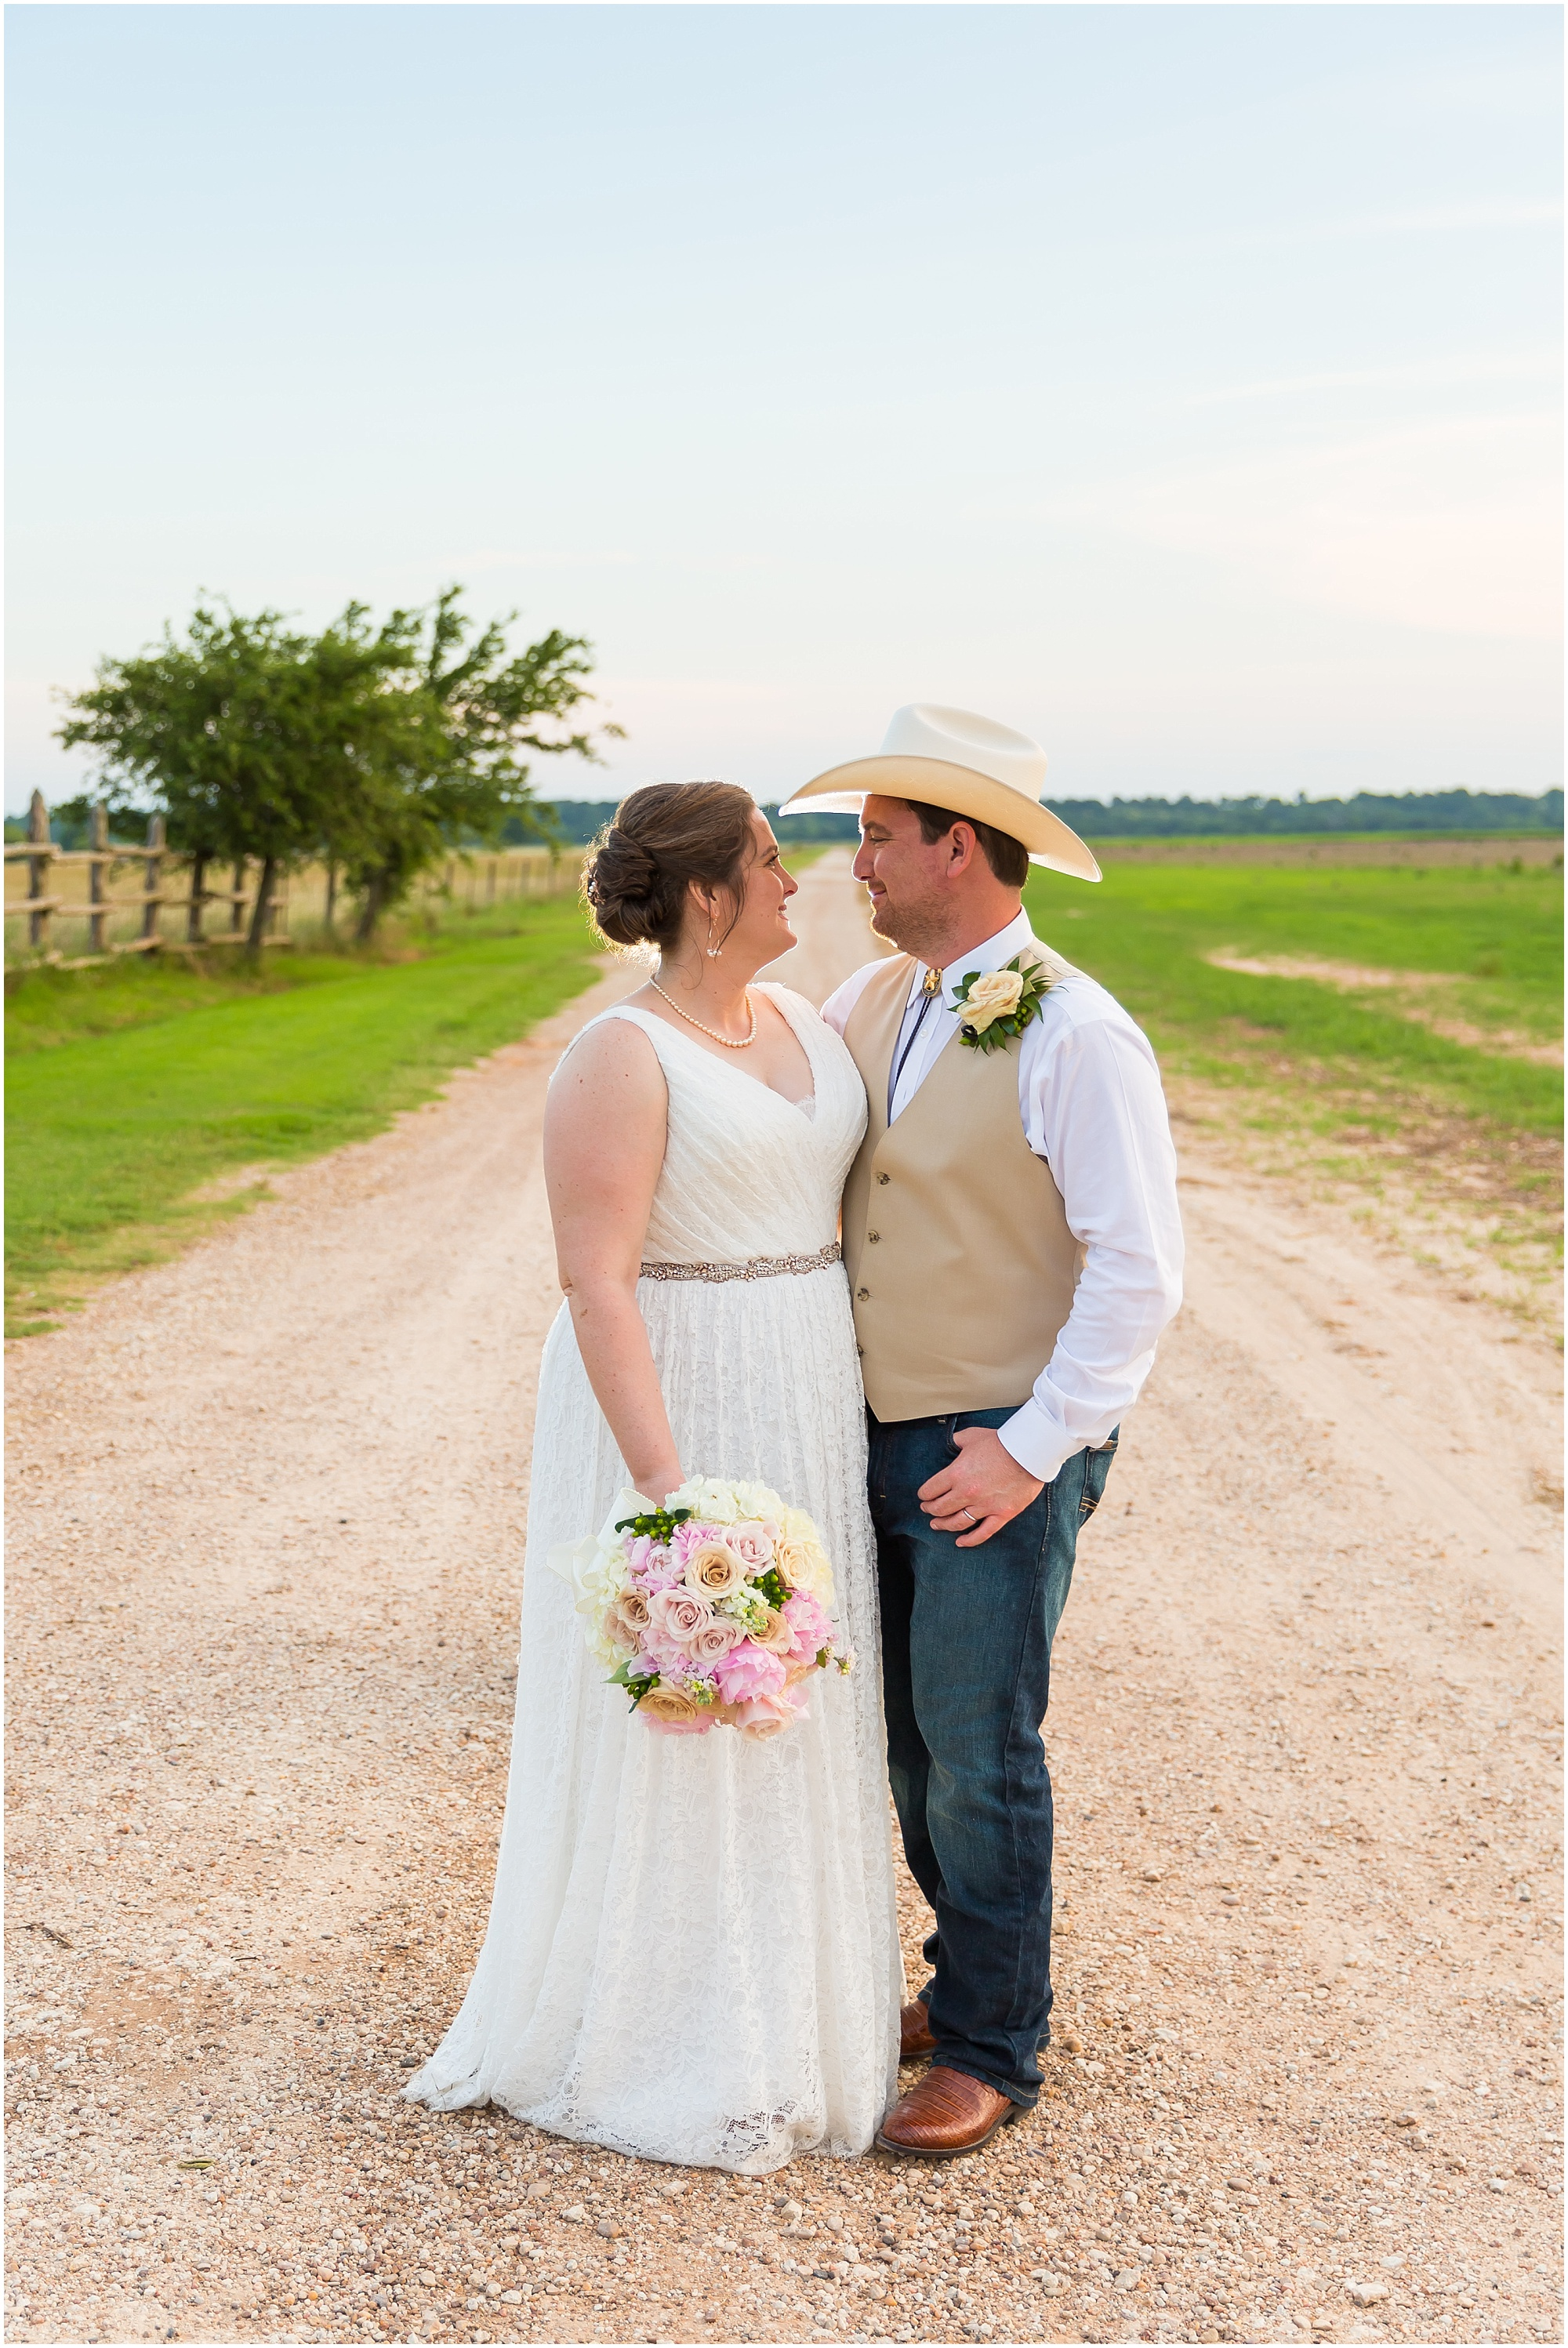 A bride and groom face one another in the center of a dirt road, surrounded by fields at their Moon River Ranch wedding | Jason & Melaina Photography | www.jasonandmelaina.com